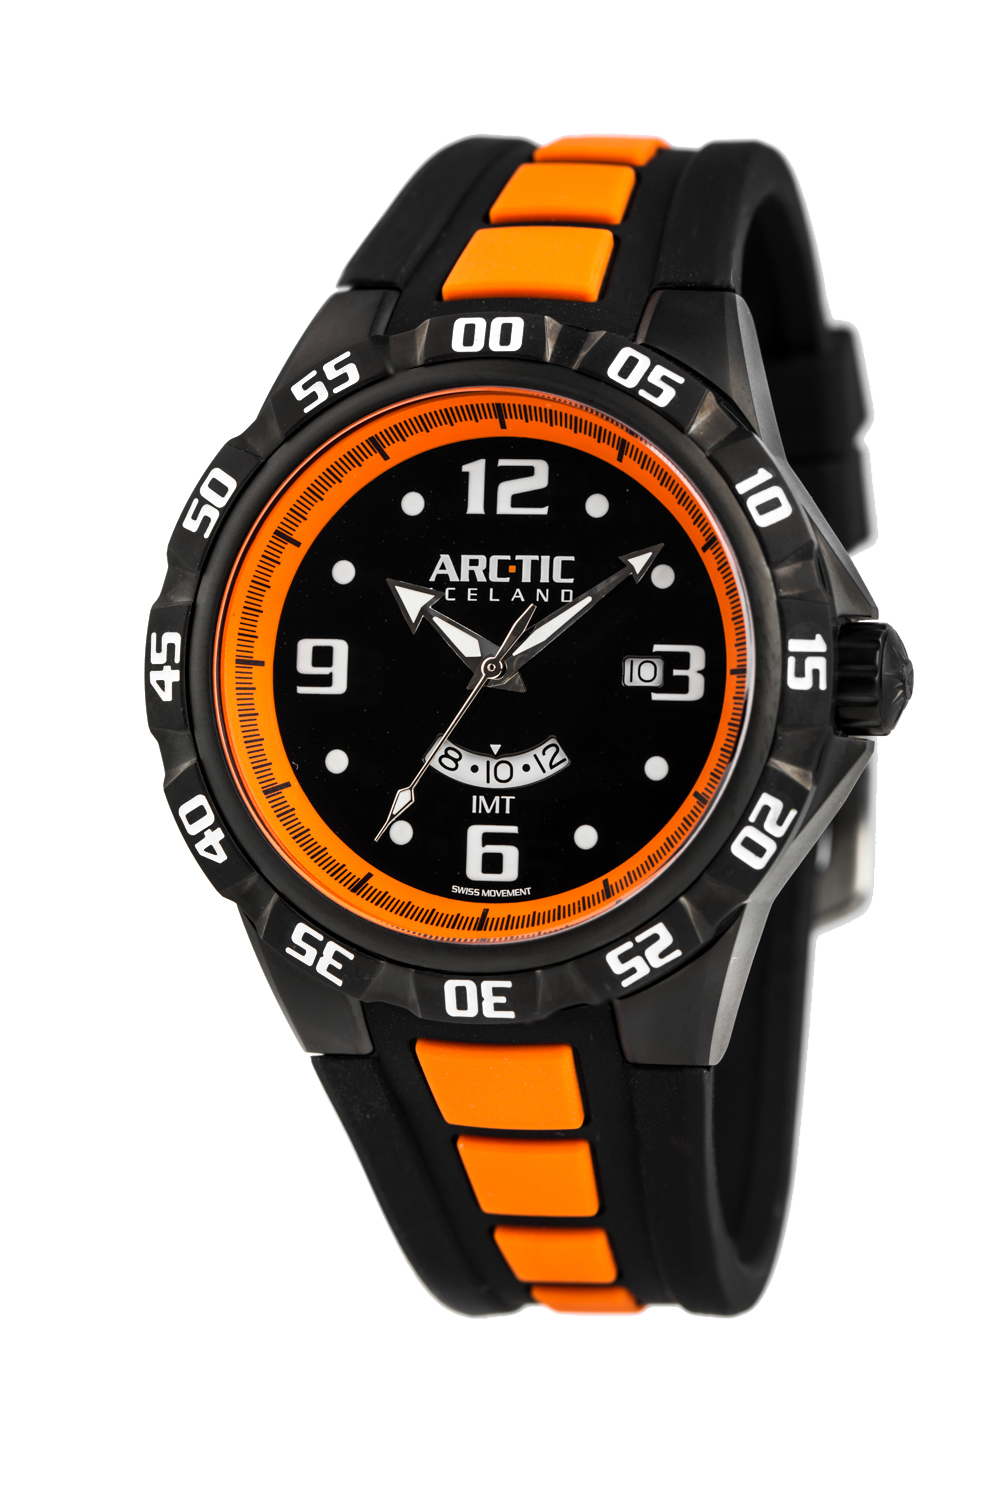 ARC-TIC Iceland IMT Star -  Learn More